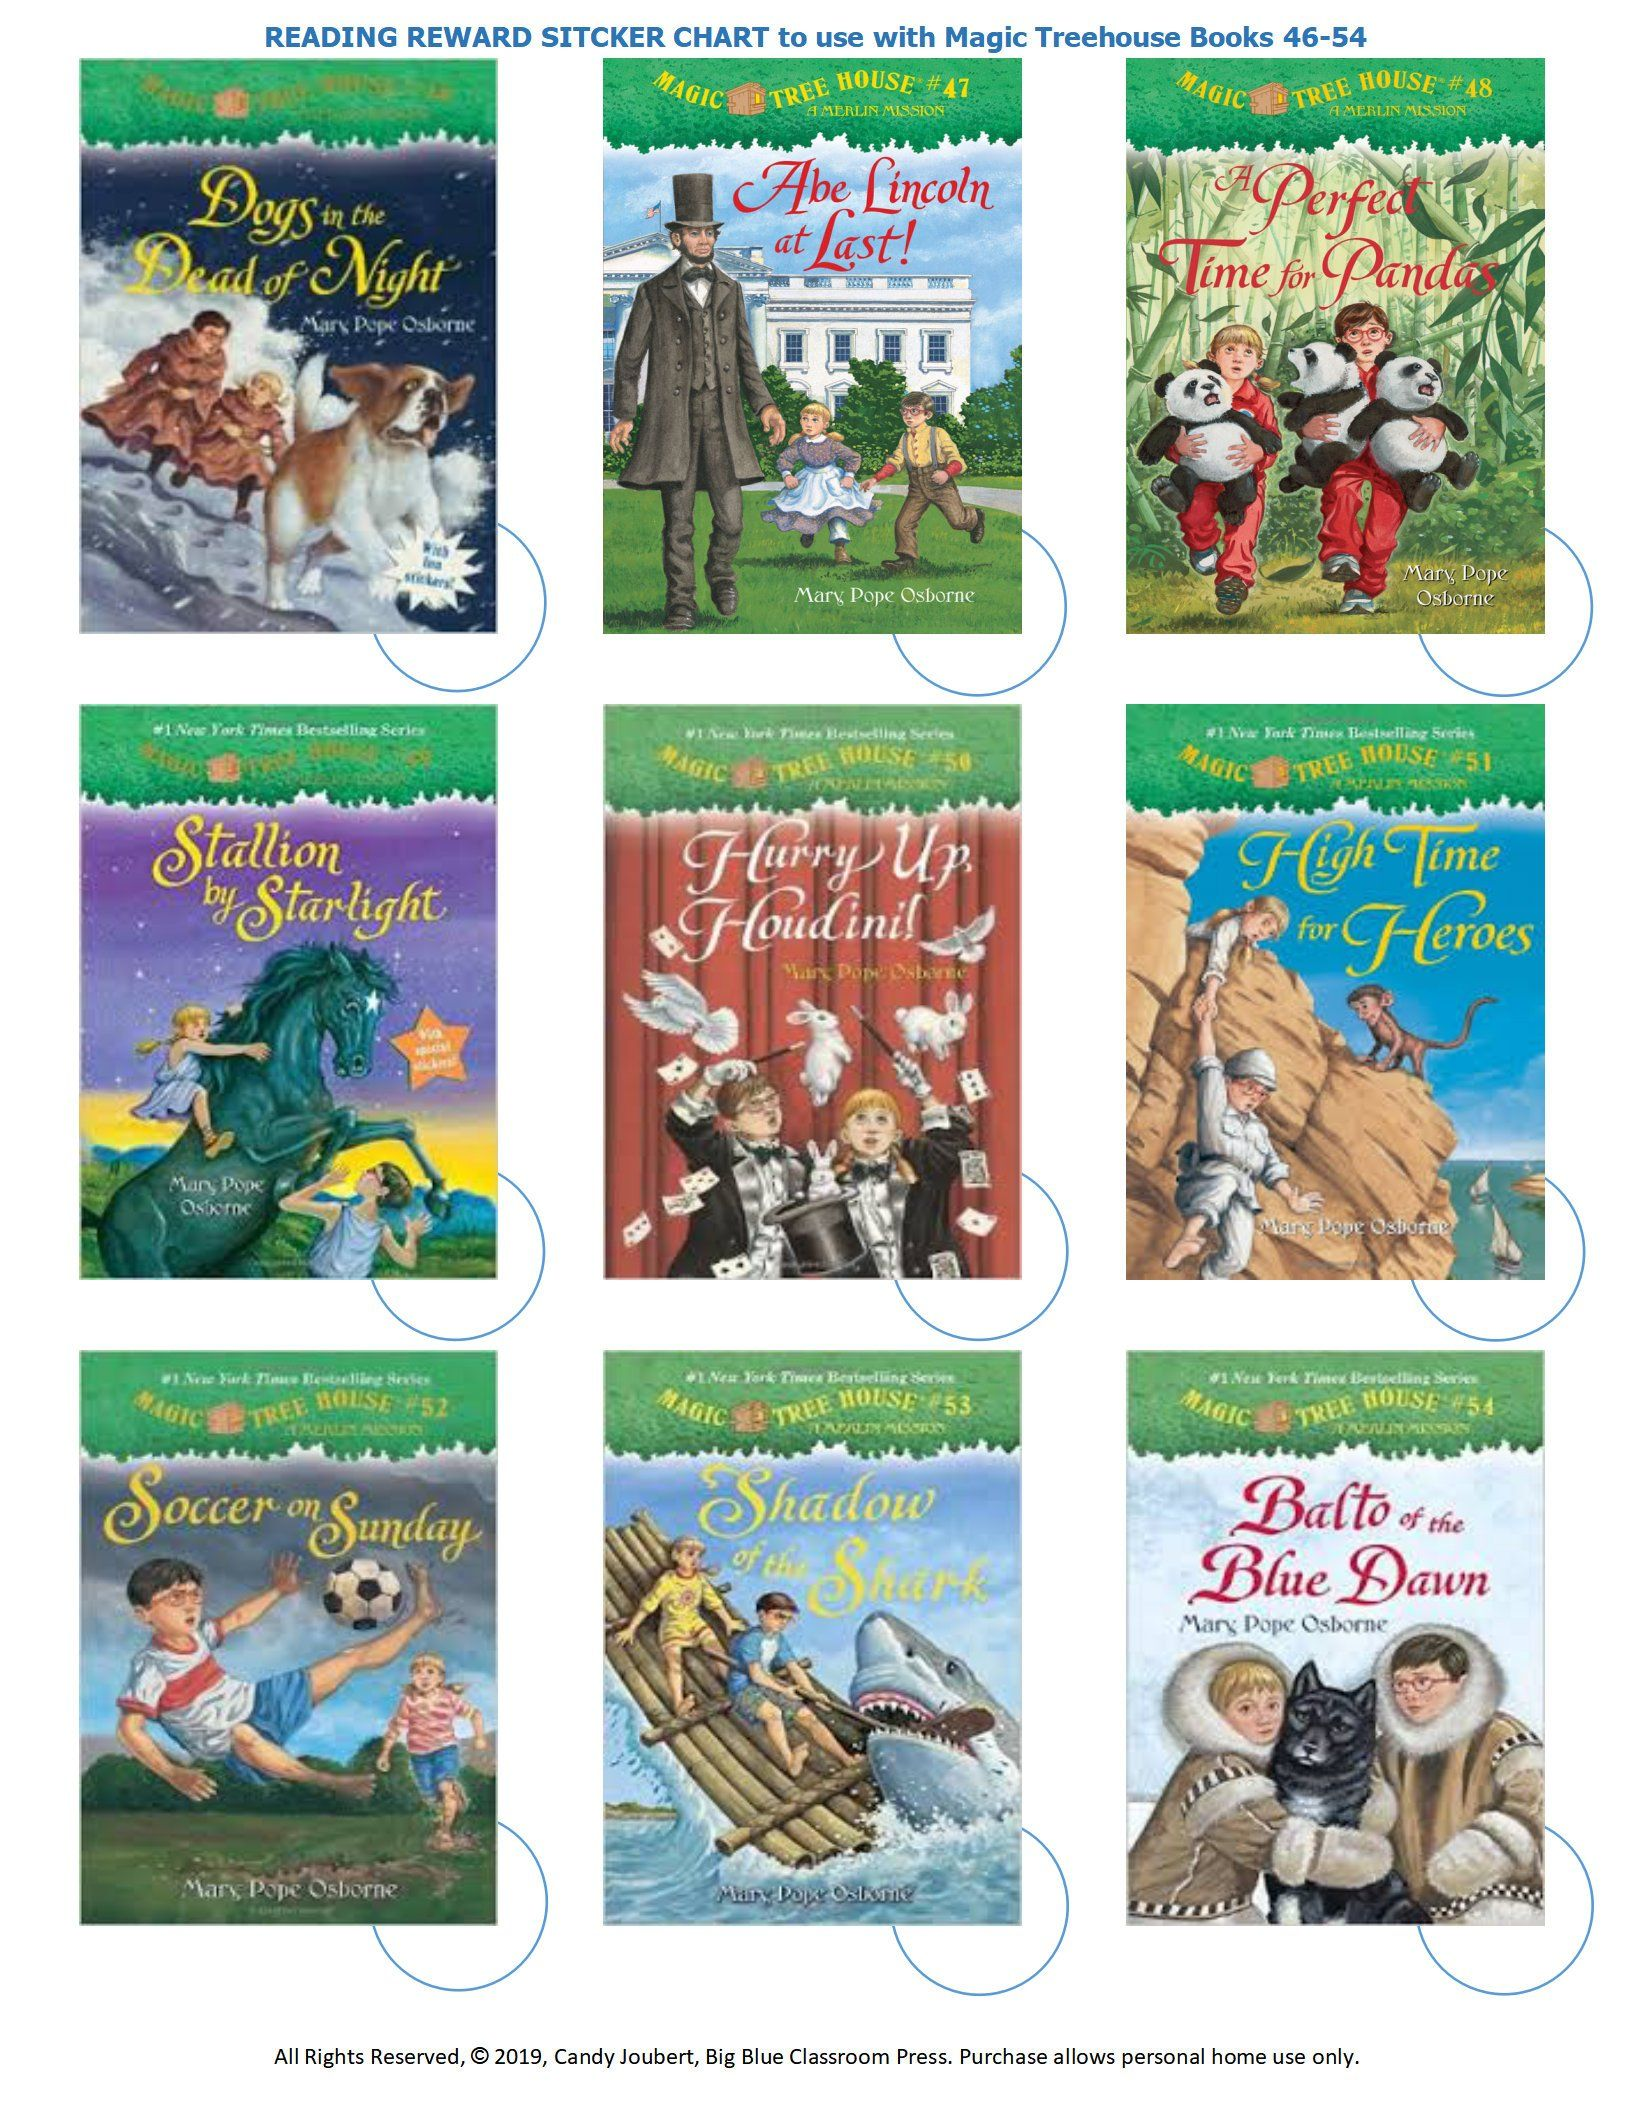 Add On Books 46 To 54 Reading Reward Sticker Chart For